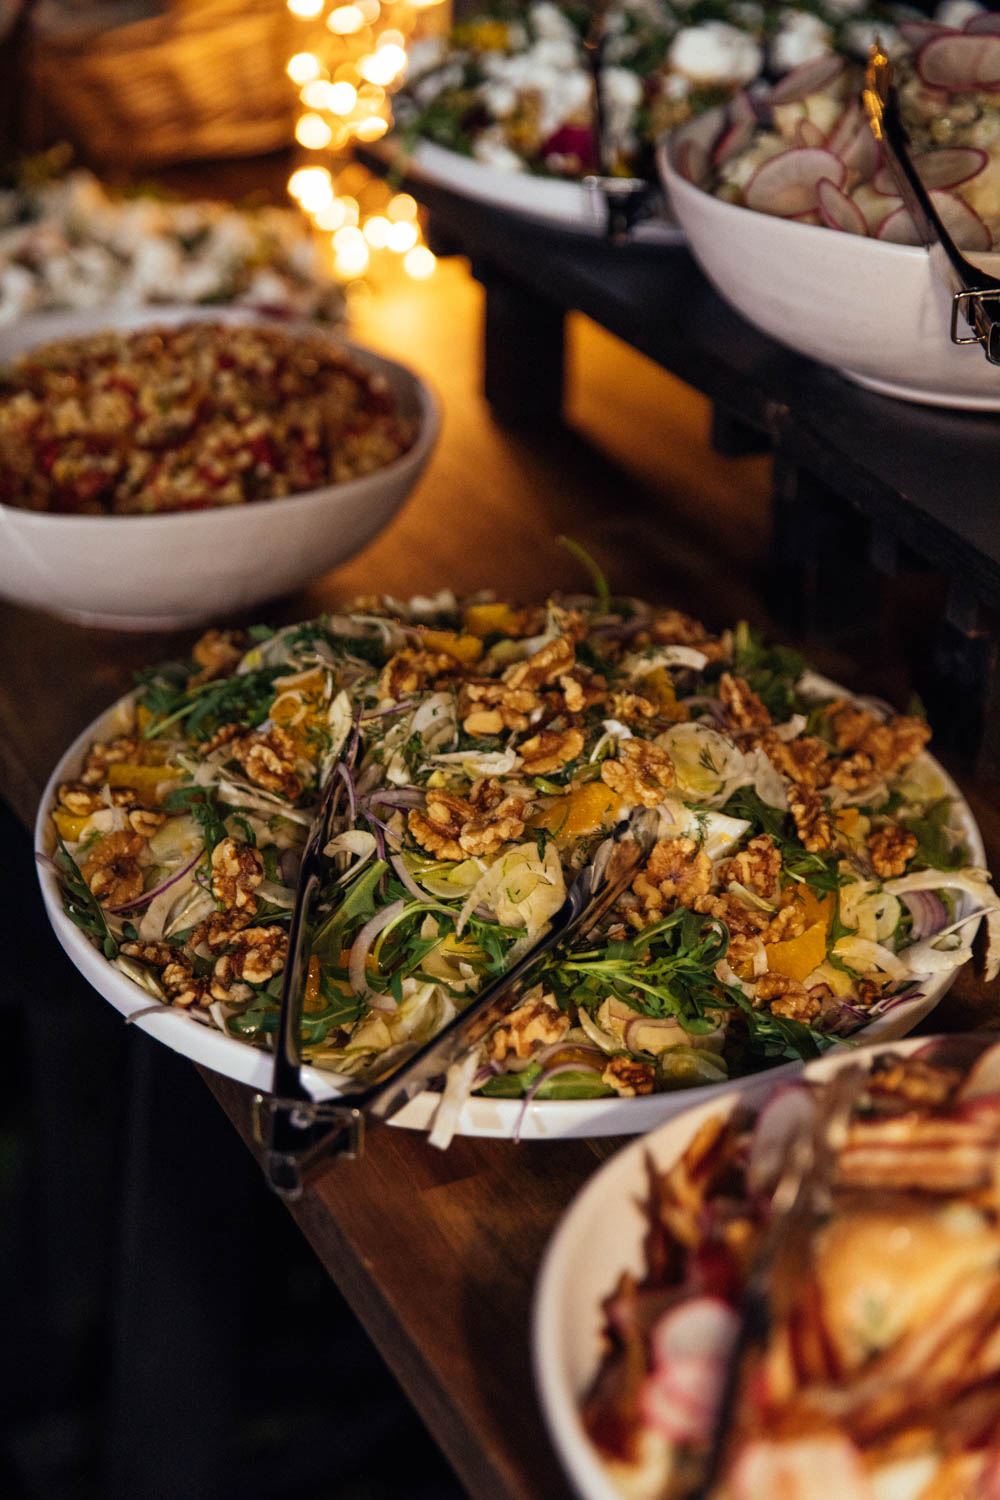 Vanteen Catering - Buffet - catering service Sunshine Coast - Fruit-5.jpg